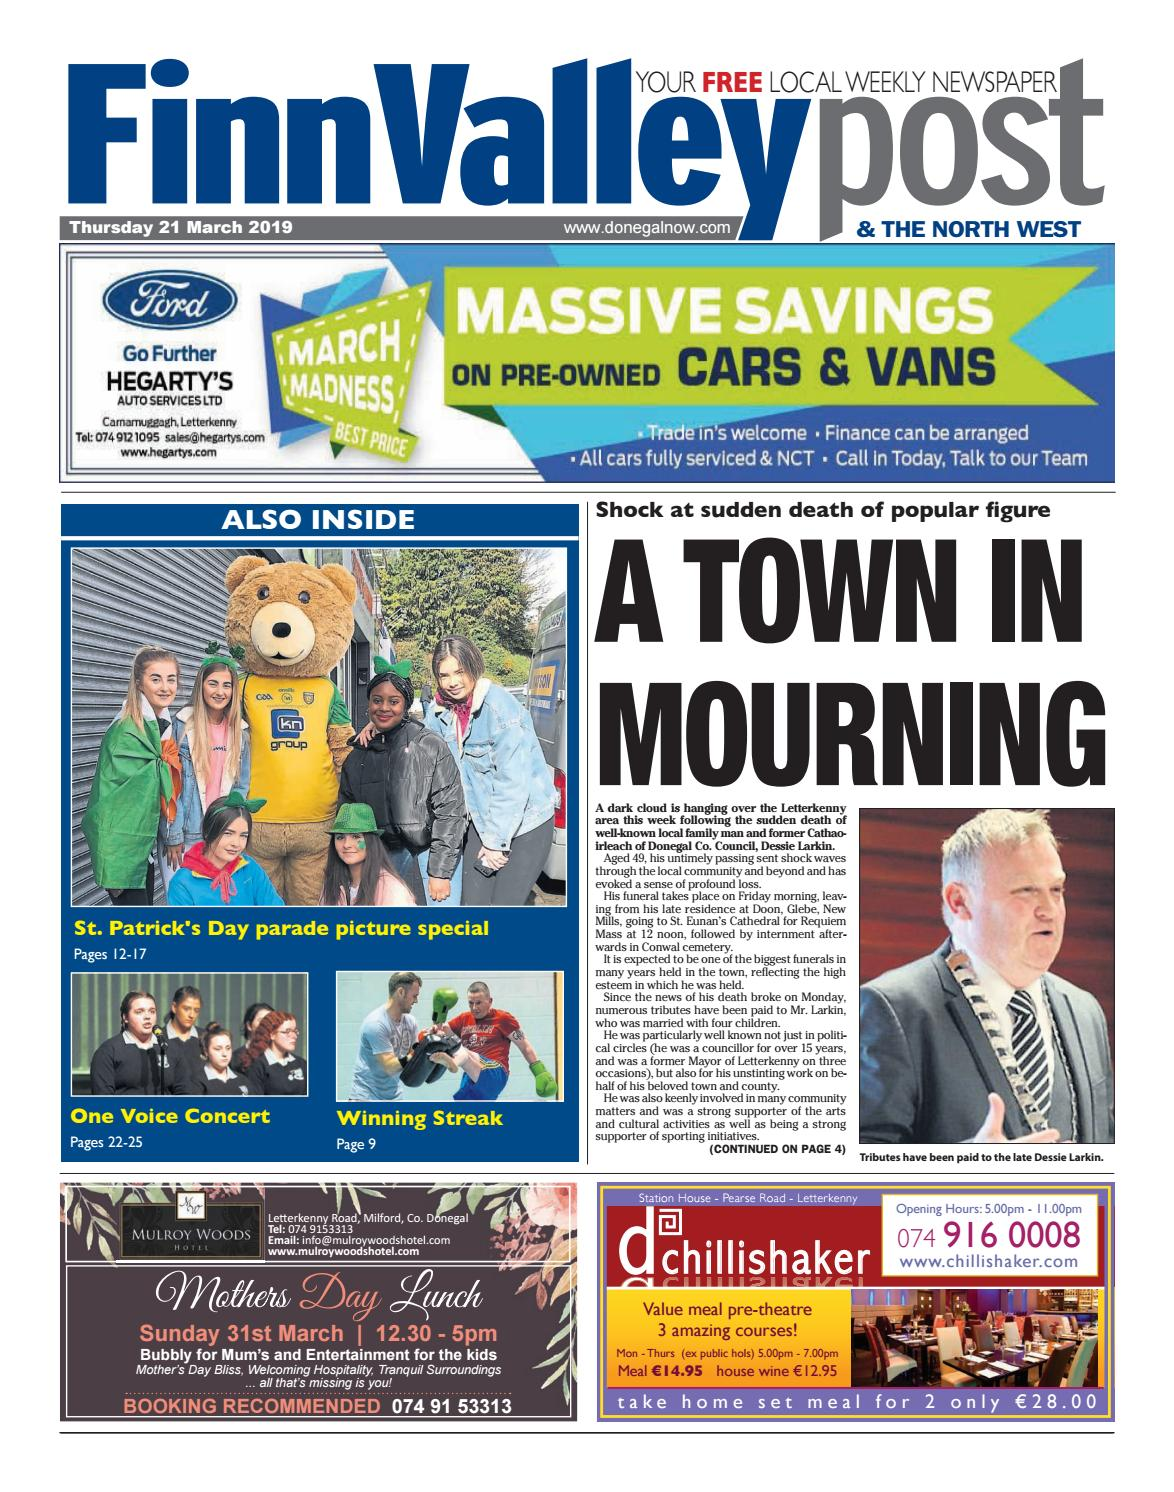 Thursday 21 March 2019 by River Media Newspapers issuu